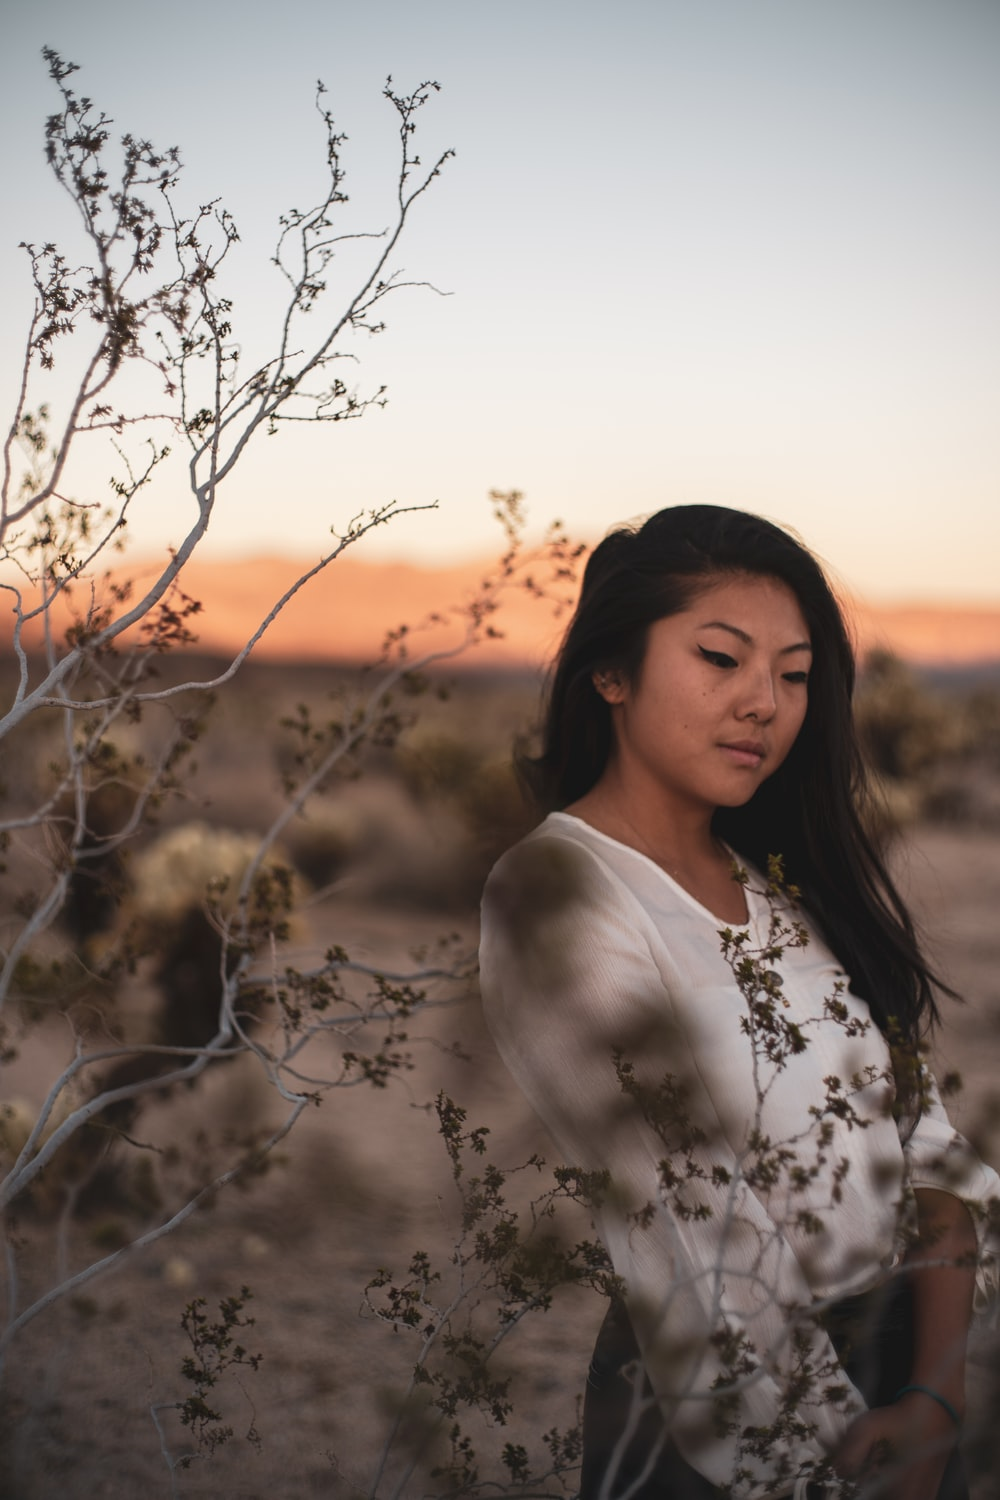 woman in white floral shirt standing near bare tree during sunset